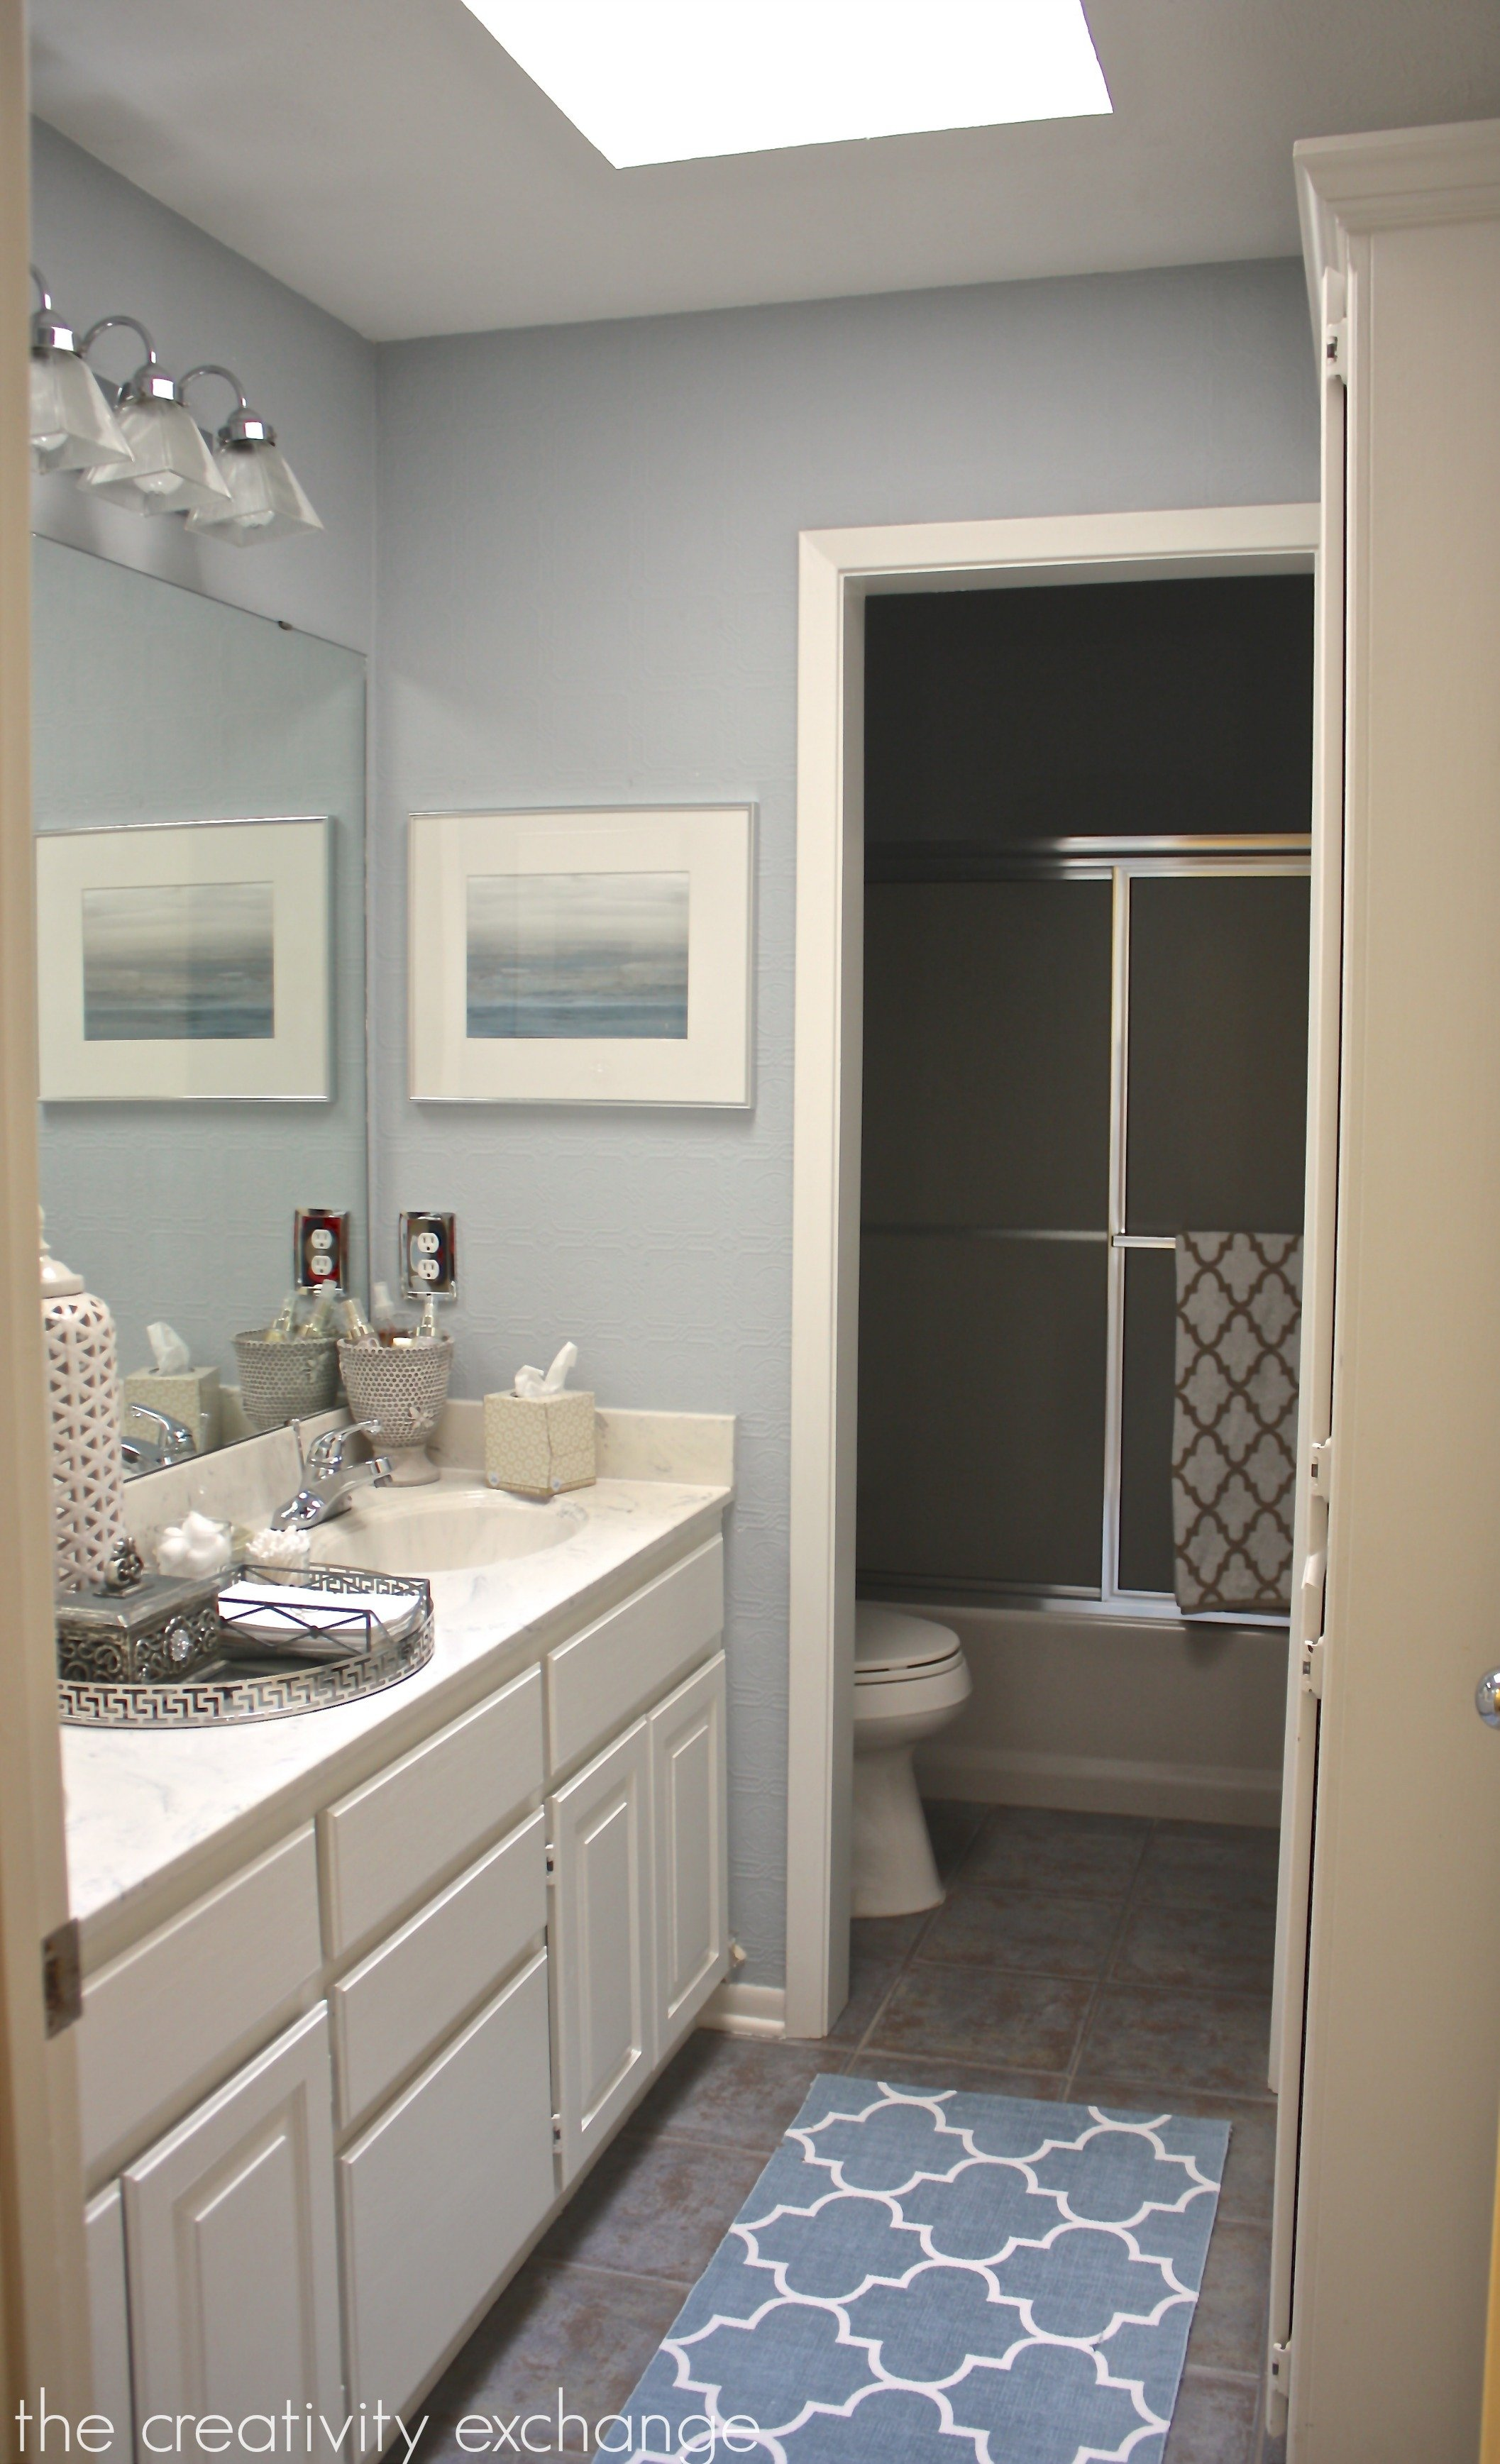 Wall Colors To Make Small Bathroom Look Larger: Paint Colors In My Home: My Color Strategy